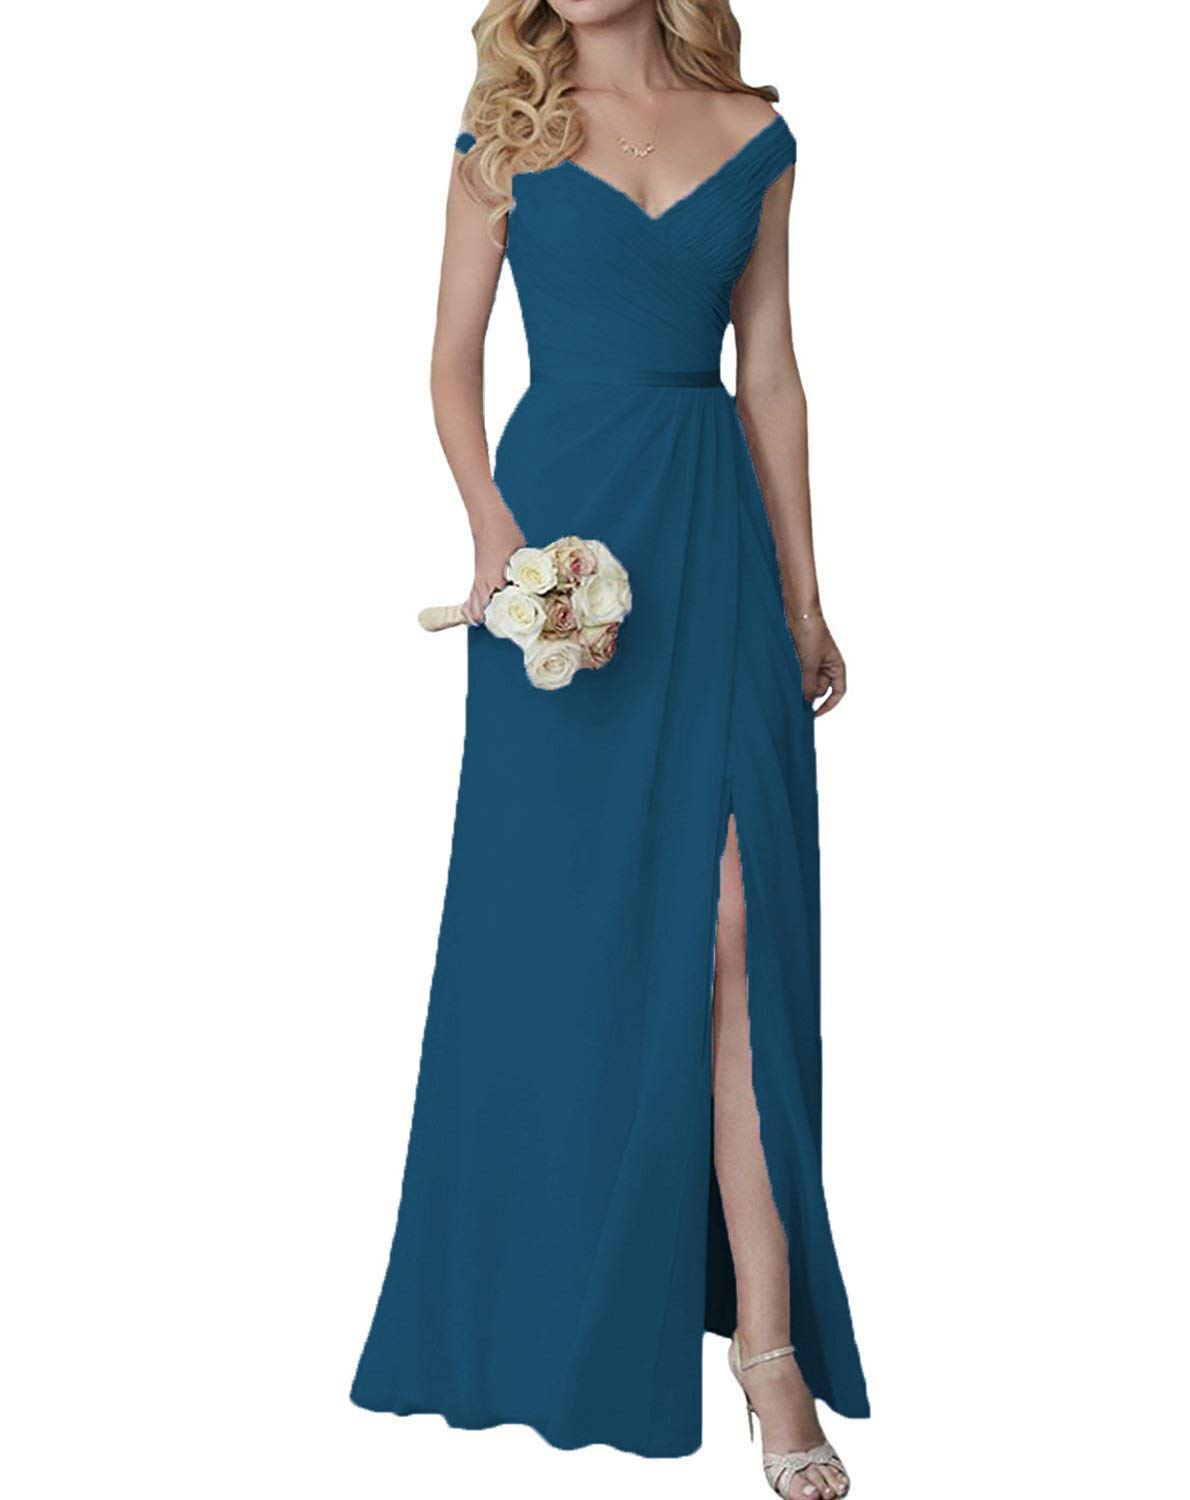 Dydsz Evening Party Dresses Long Prom Dress Women Juniors